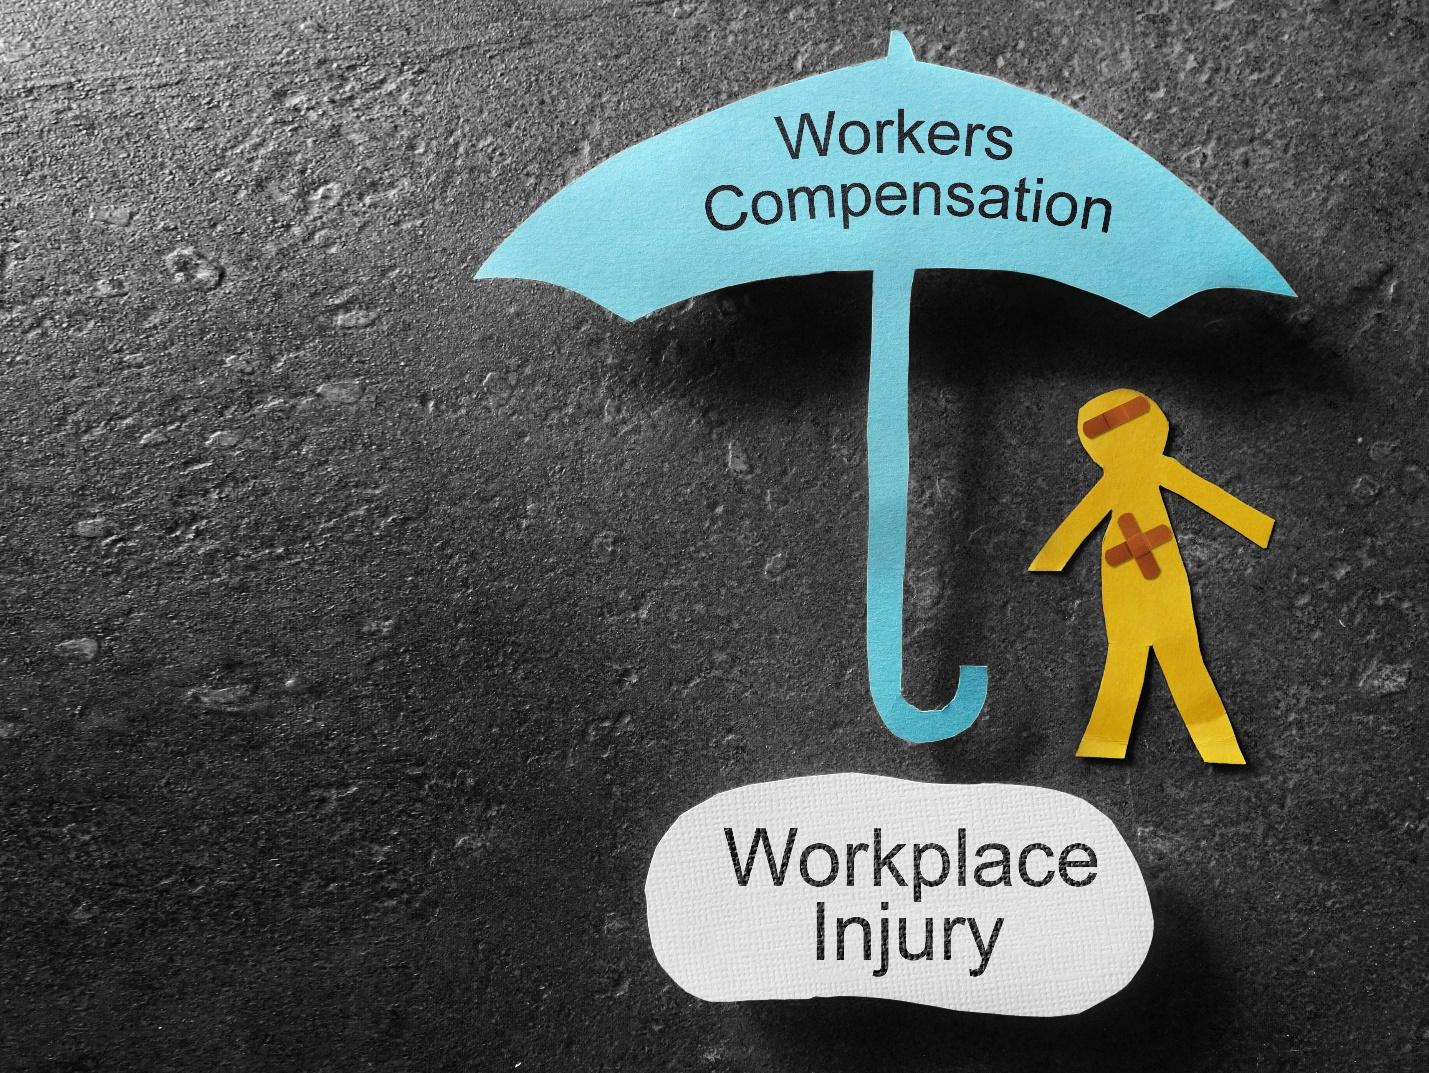 Workers Compensation Policy - Workplace injury